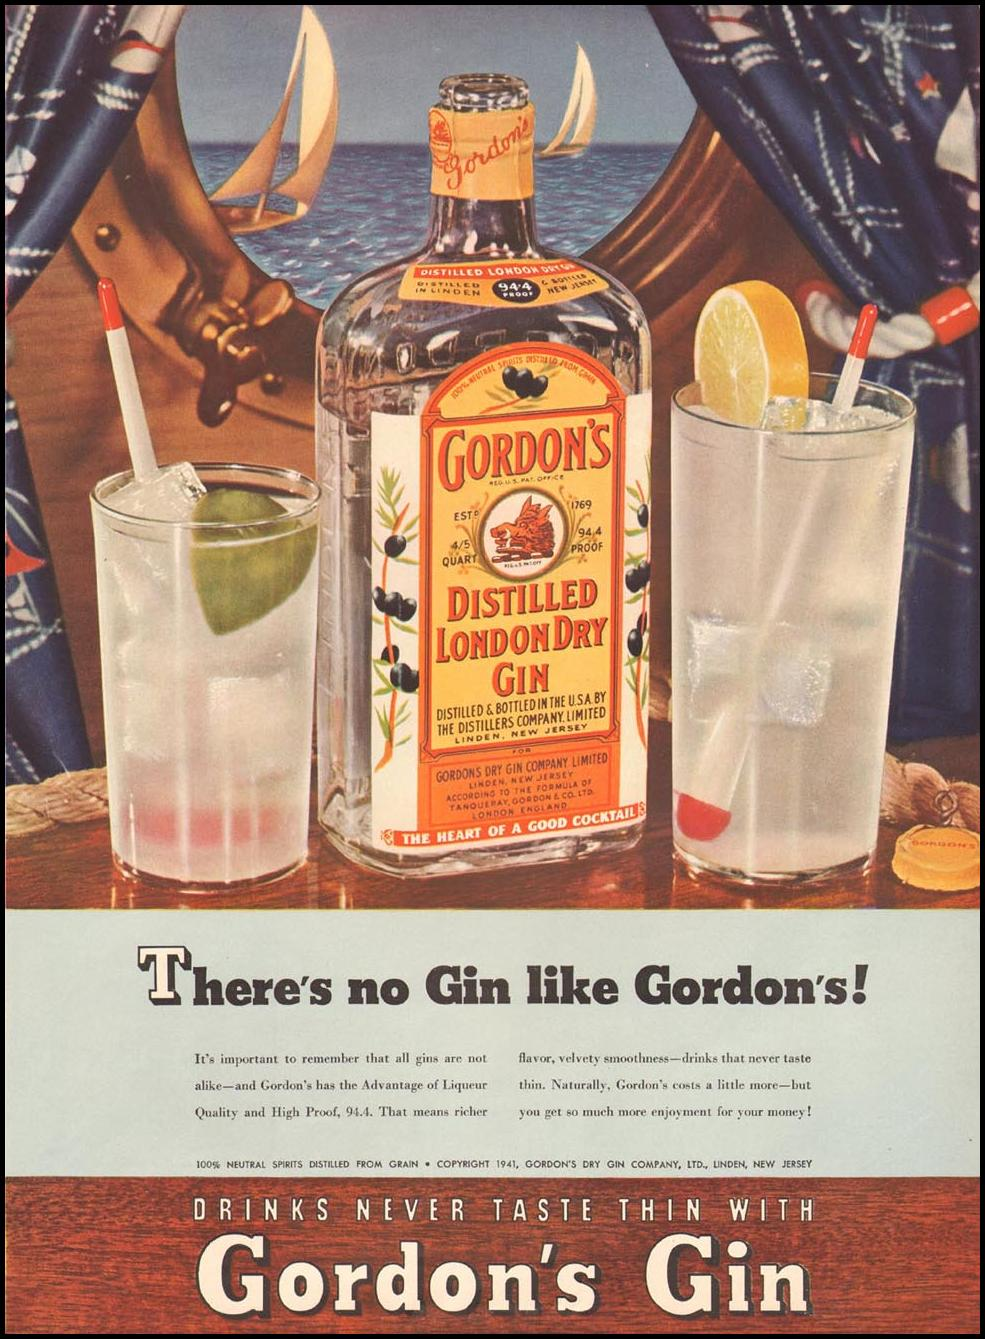 GORDON'S DISTILLED LONDON DRY GIN LIFE 08/04/1941 p. 43